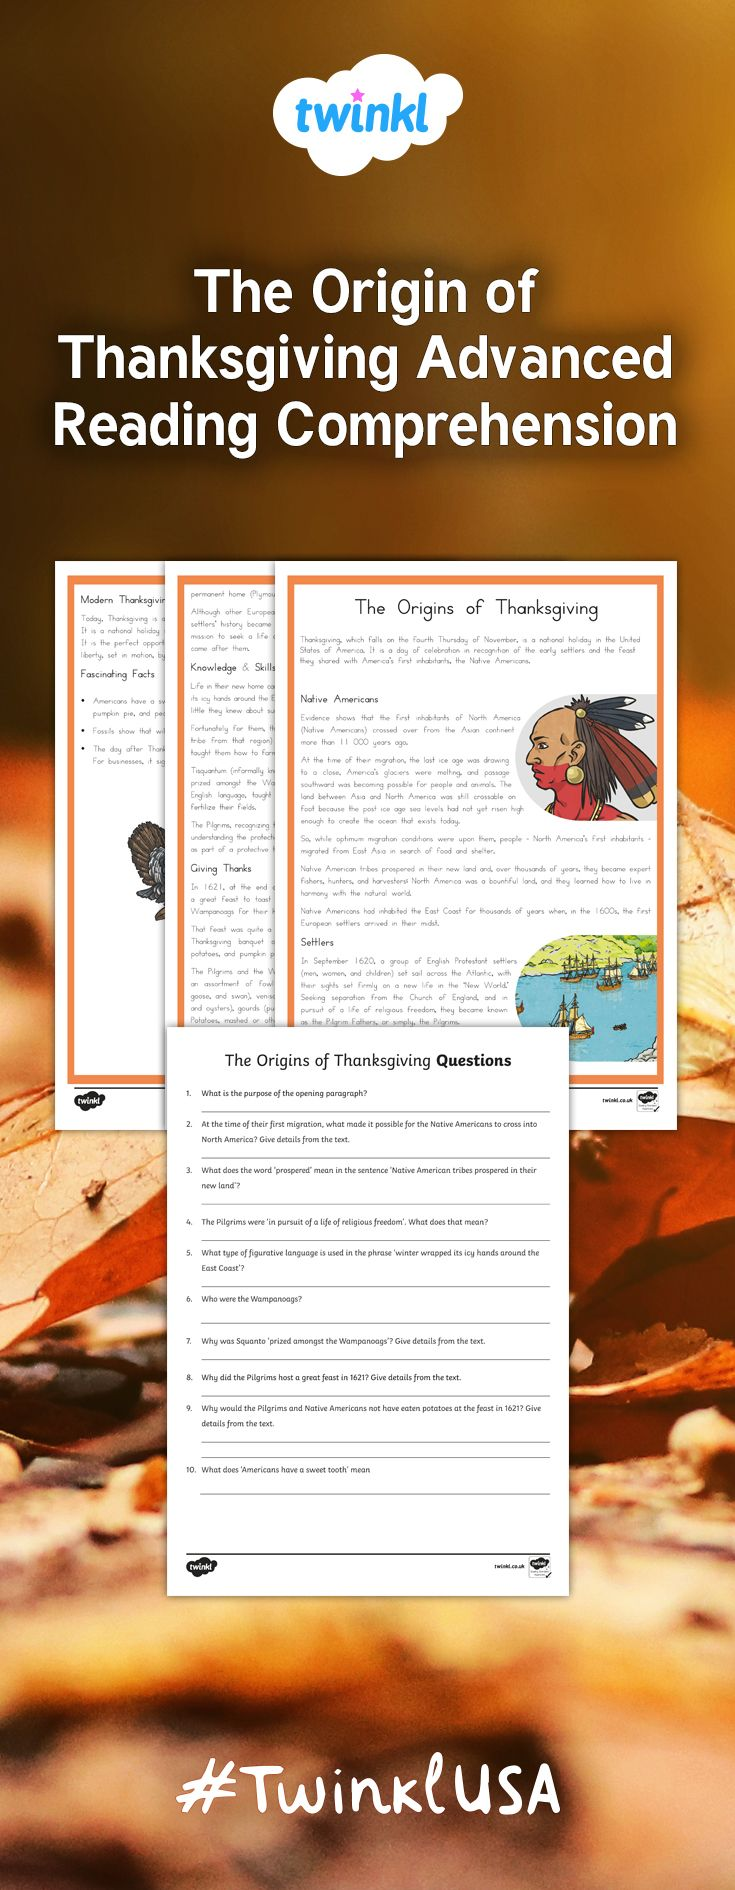 Fifth Grade The Origin Of Thanksgiving Reading Comprehension Activity Reading Comprehension Activities Thanksgiving Reading Comprehension Reading Comprehension [ 1890 x 735 Pixel ]